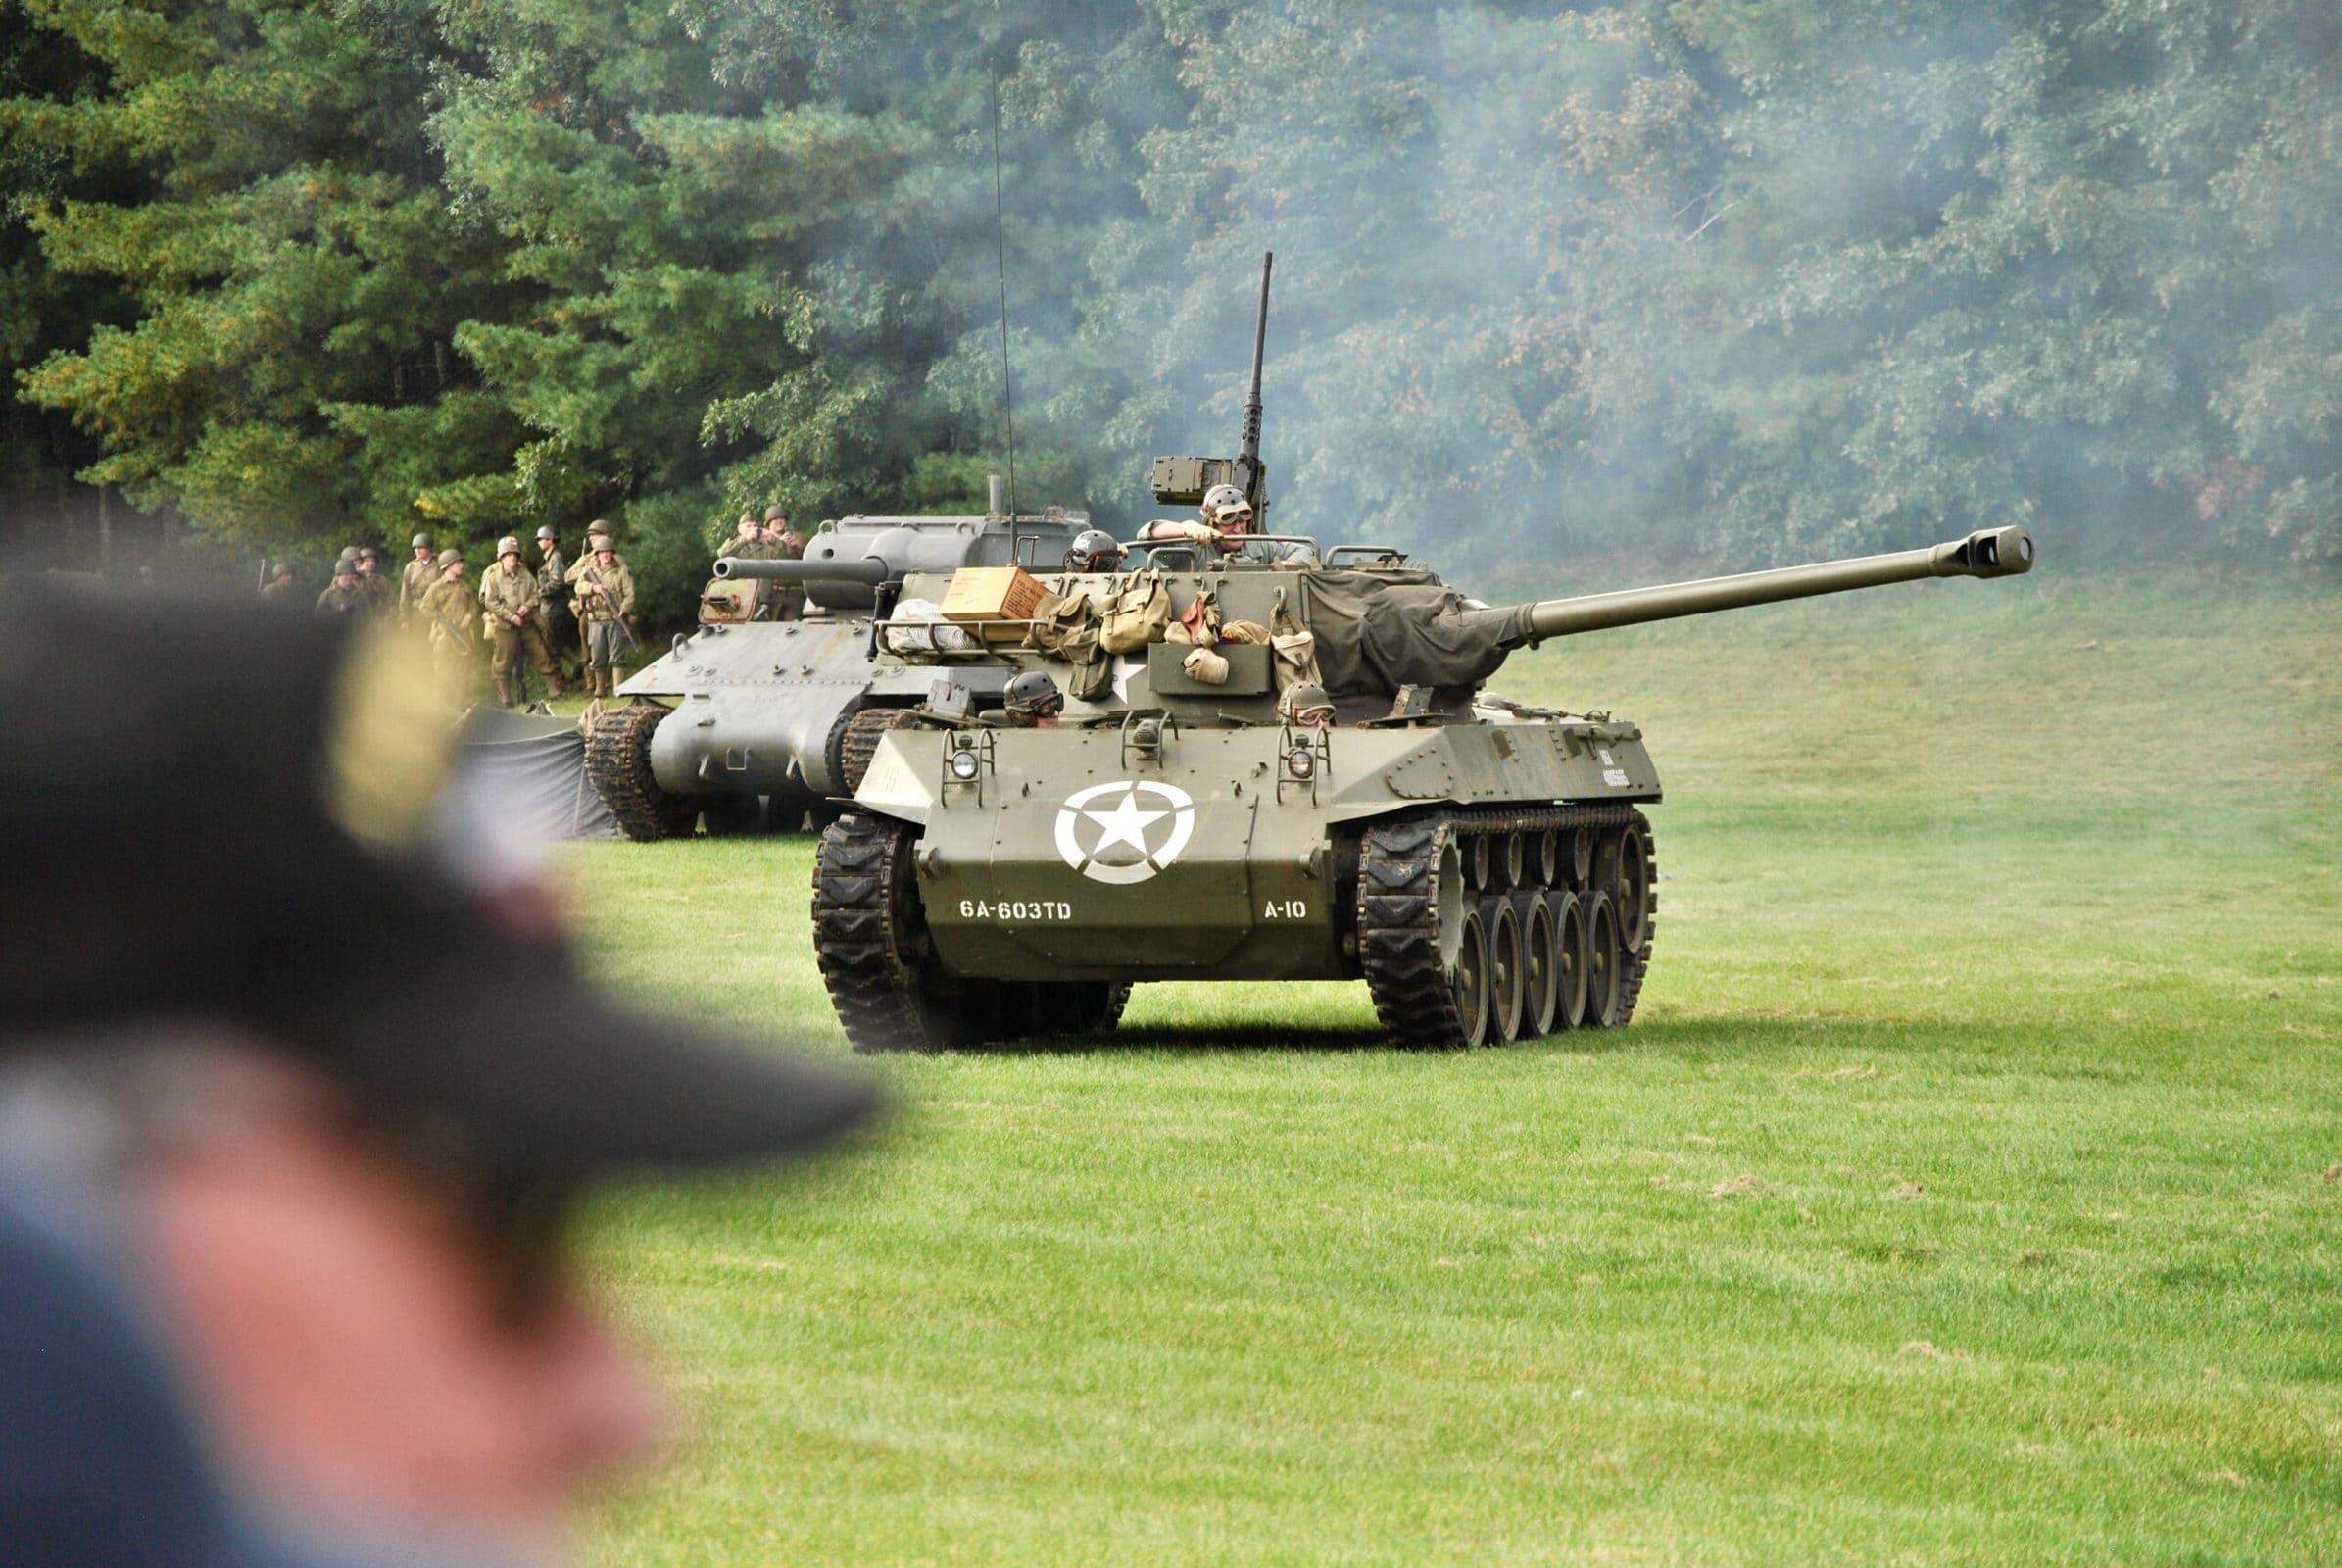 A tank swings its turret into position as reenactment attendees look on.